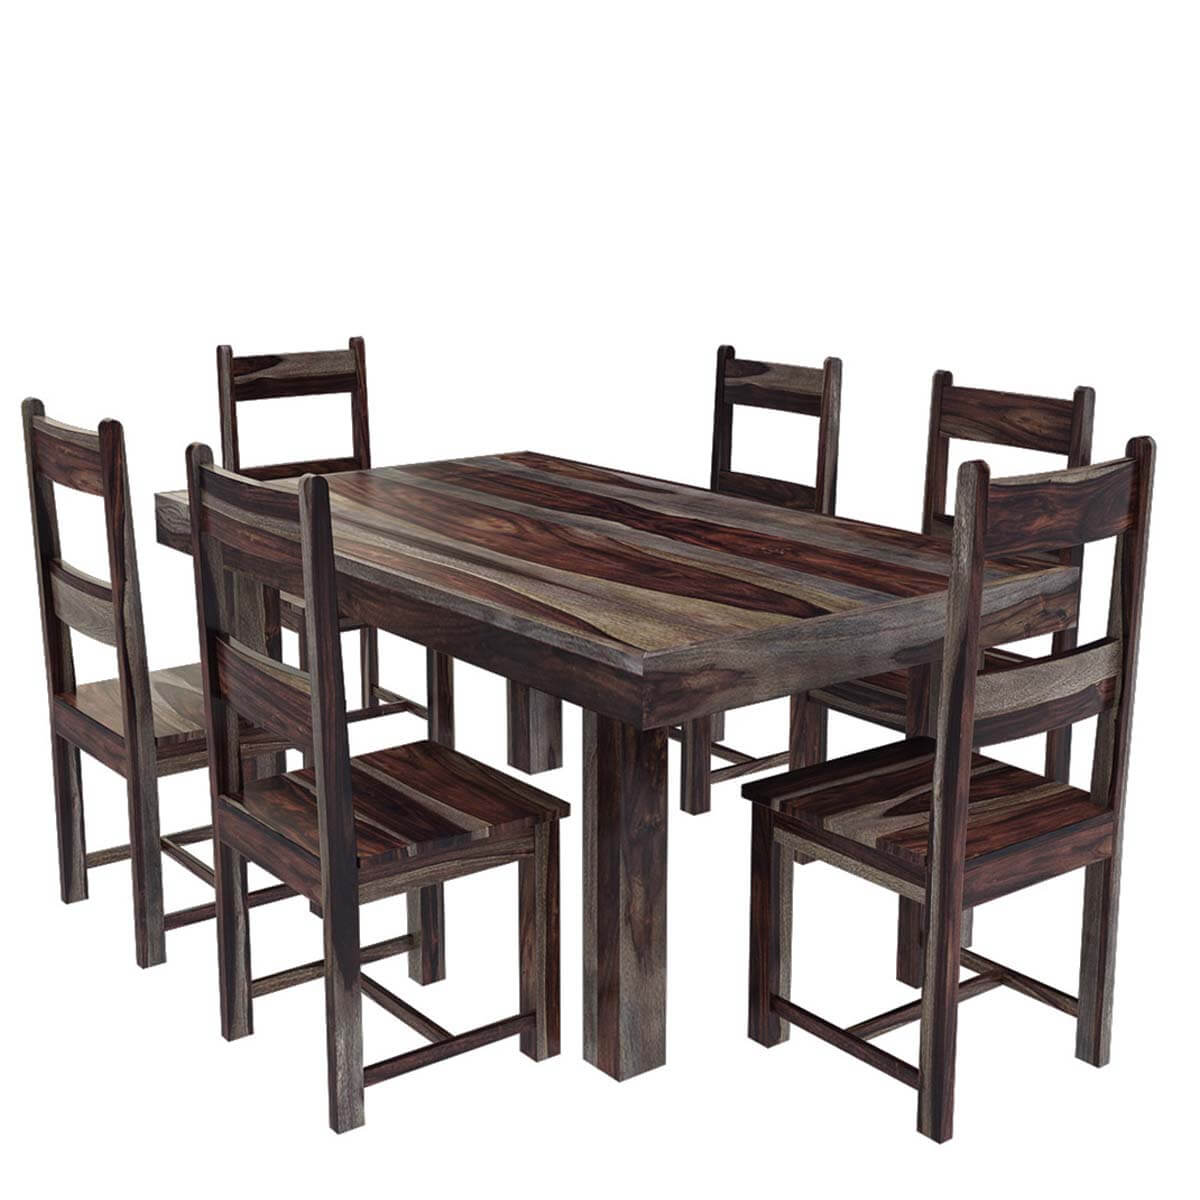 Casual Modern Dining Room: Frisco Modern Solid Wood Casual Rustic Dining Room Table